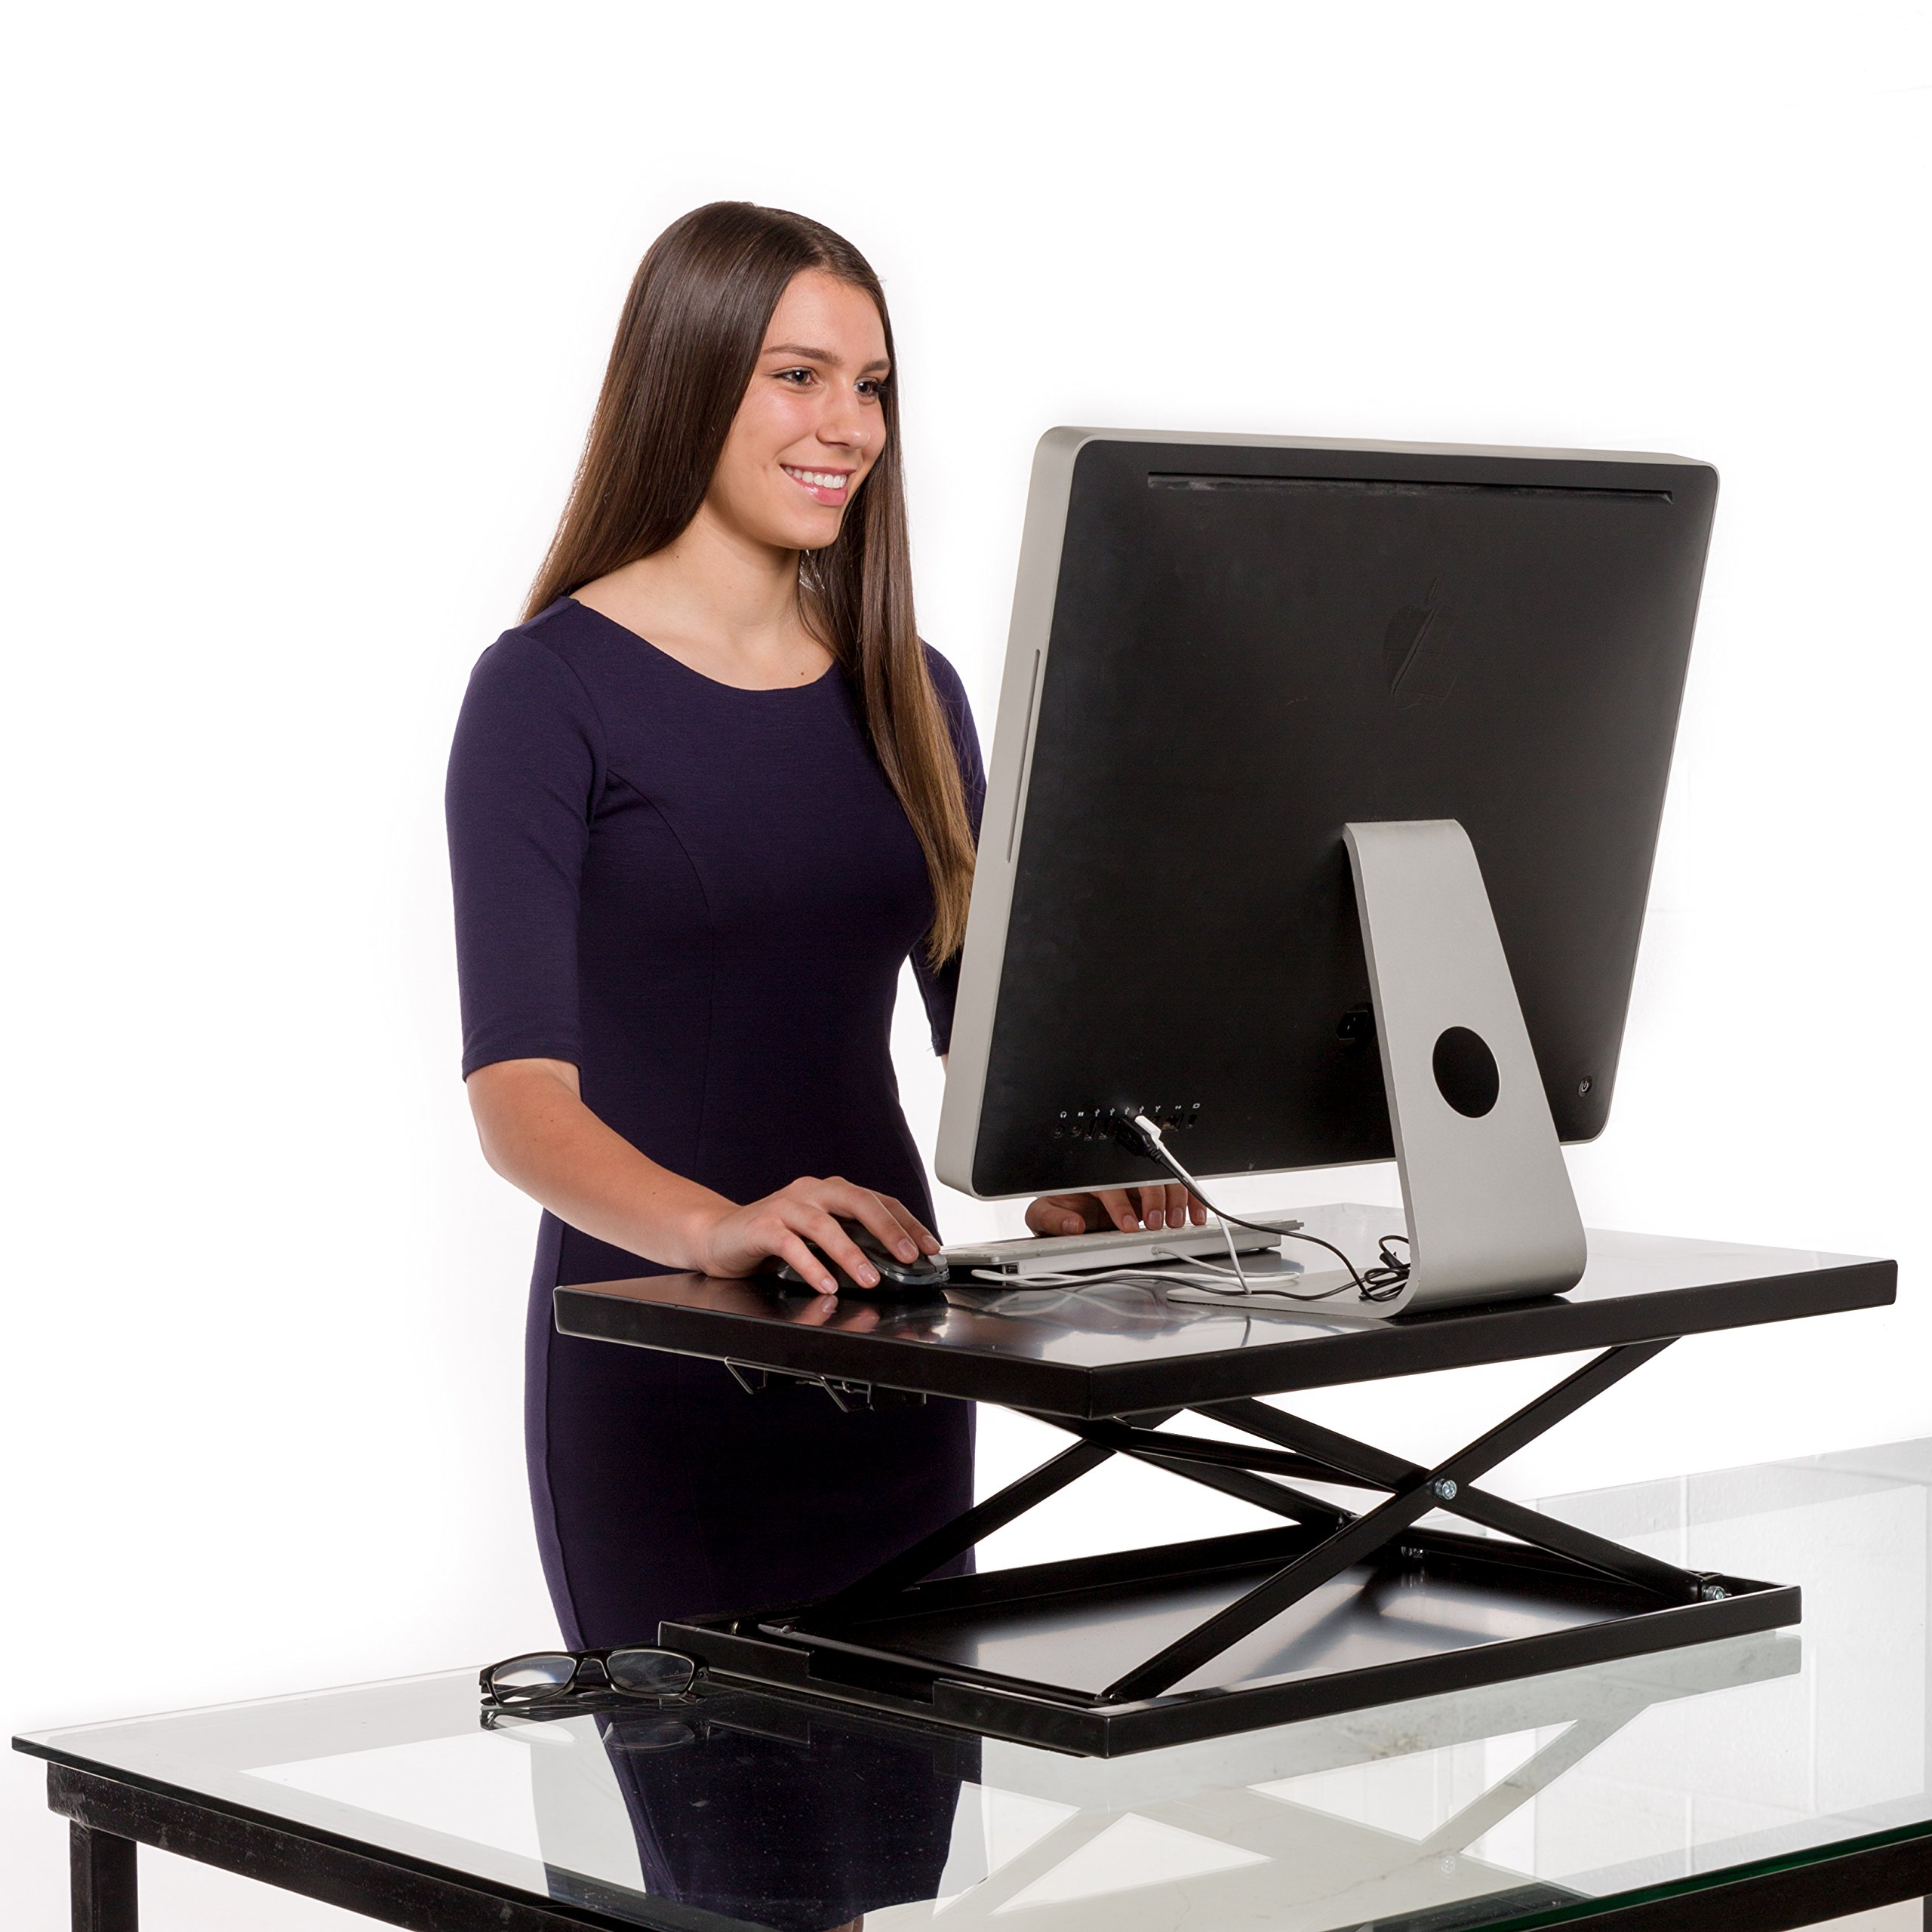 Vertical Vitality Air Glider Standing Desk - Best Sit to Stand Up Desktop Converter for Your Laptop or Computer Monitor – No Assembly Height Adjustable Desk Converts Instantly